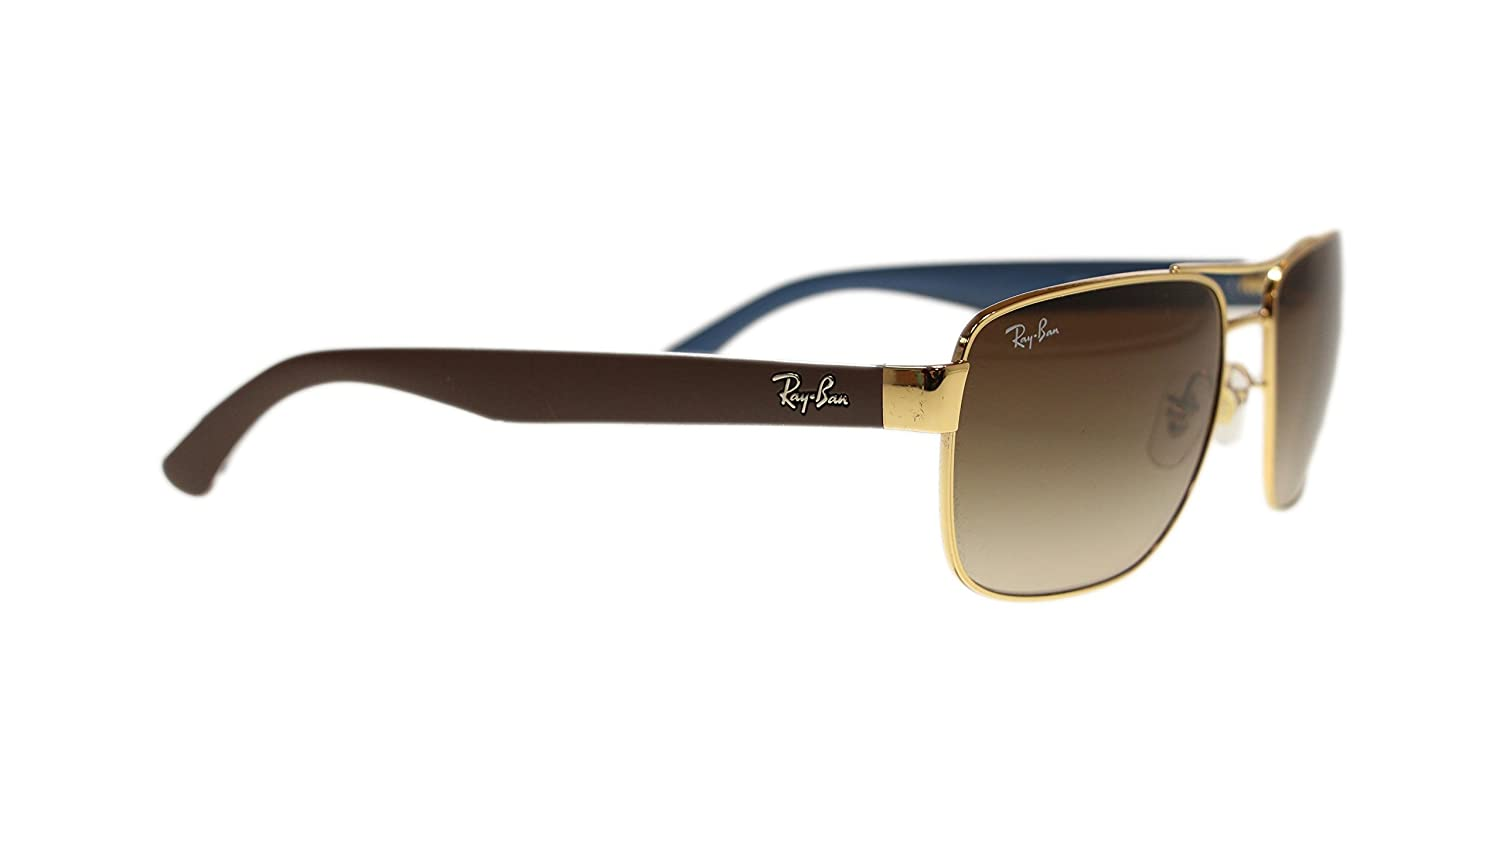 ada1c24925 Amazon.com  Ray Ban Mens Sunglasses RB3530 001 13 Gold Brown Gradient Lens  58mm Authentic  Clothing